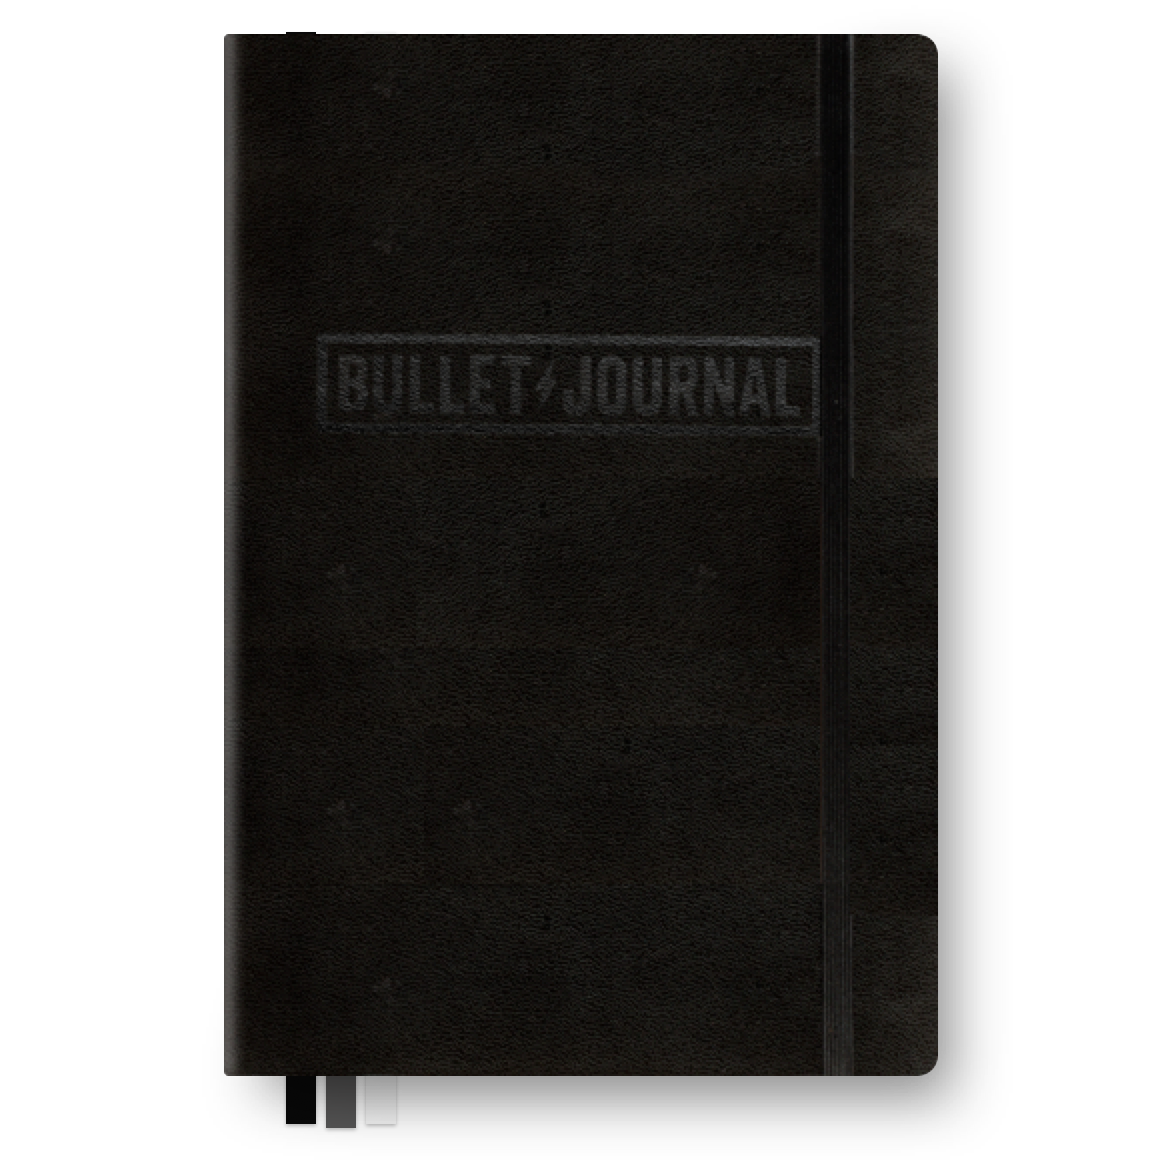 The Official Bullet Journal Notebook